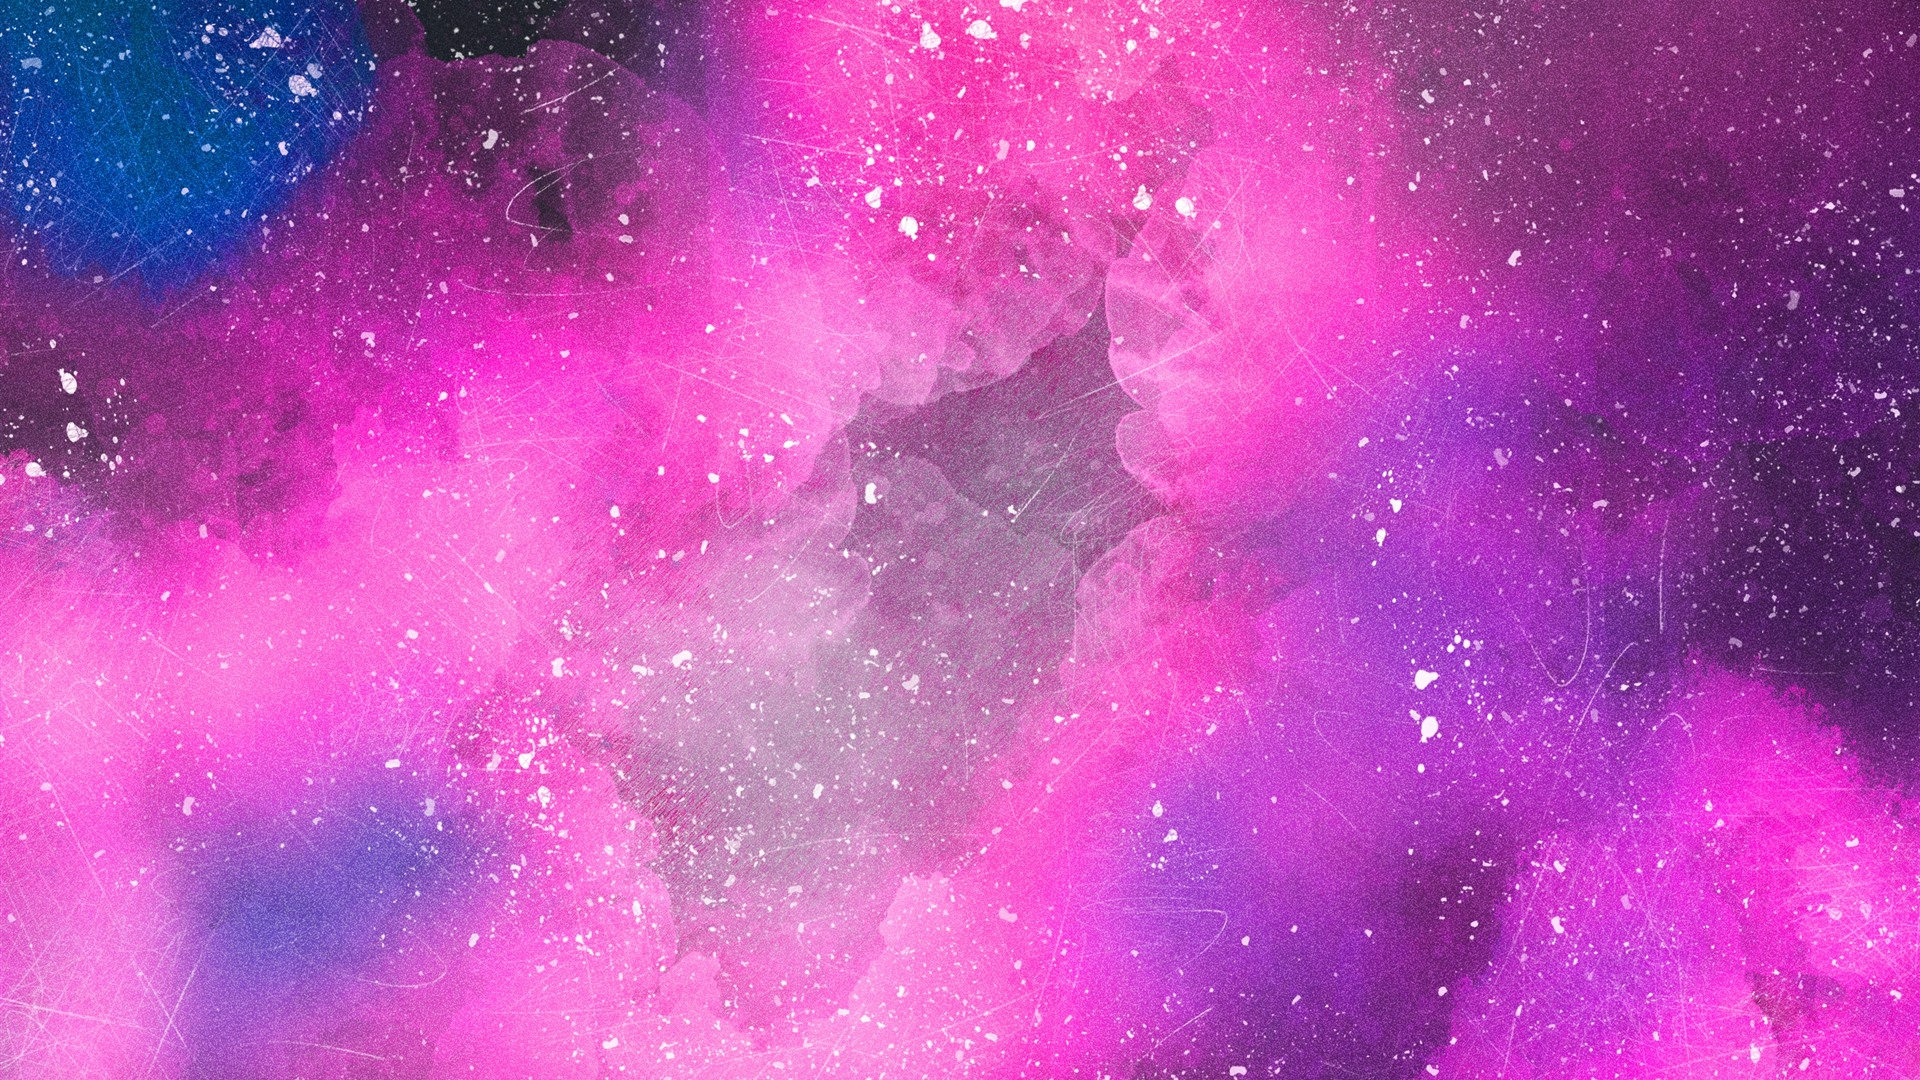 Wallpaper Pink Space, Clouds, Abstract 2880x1800 HD